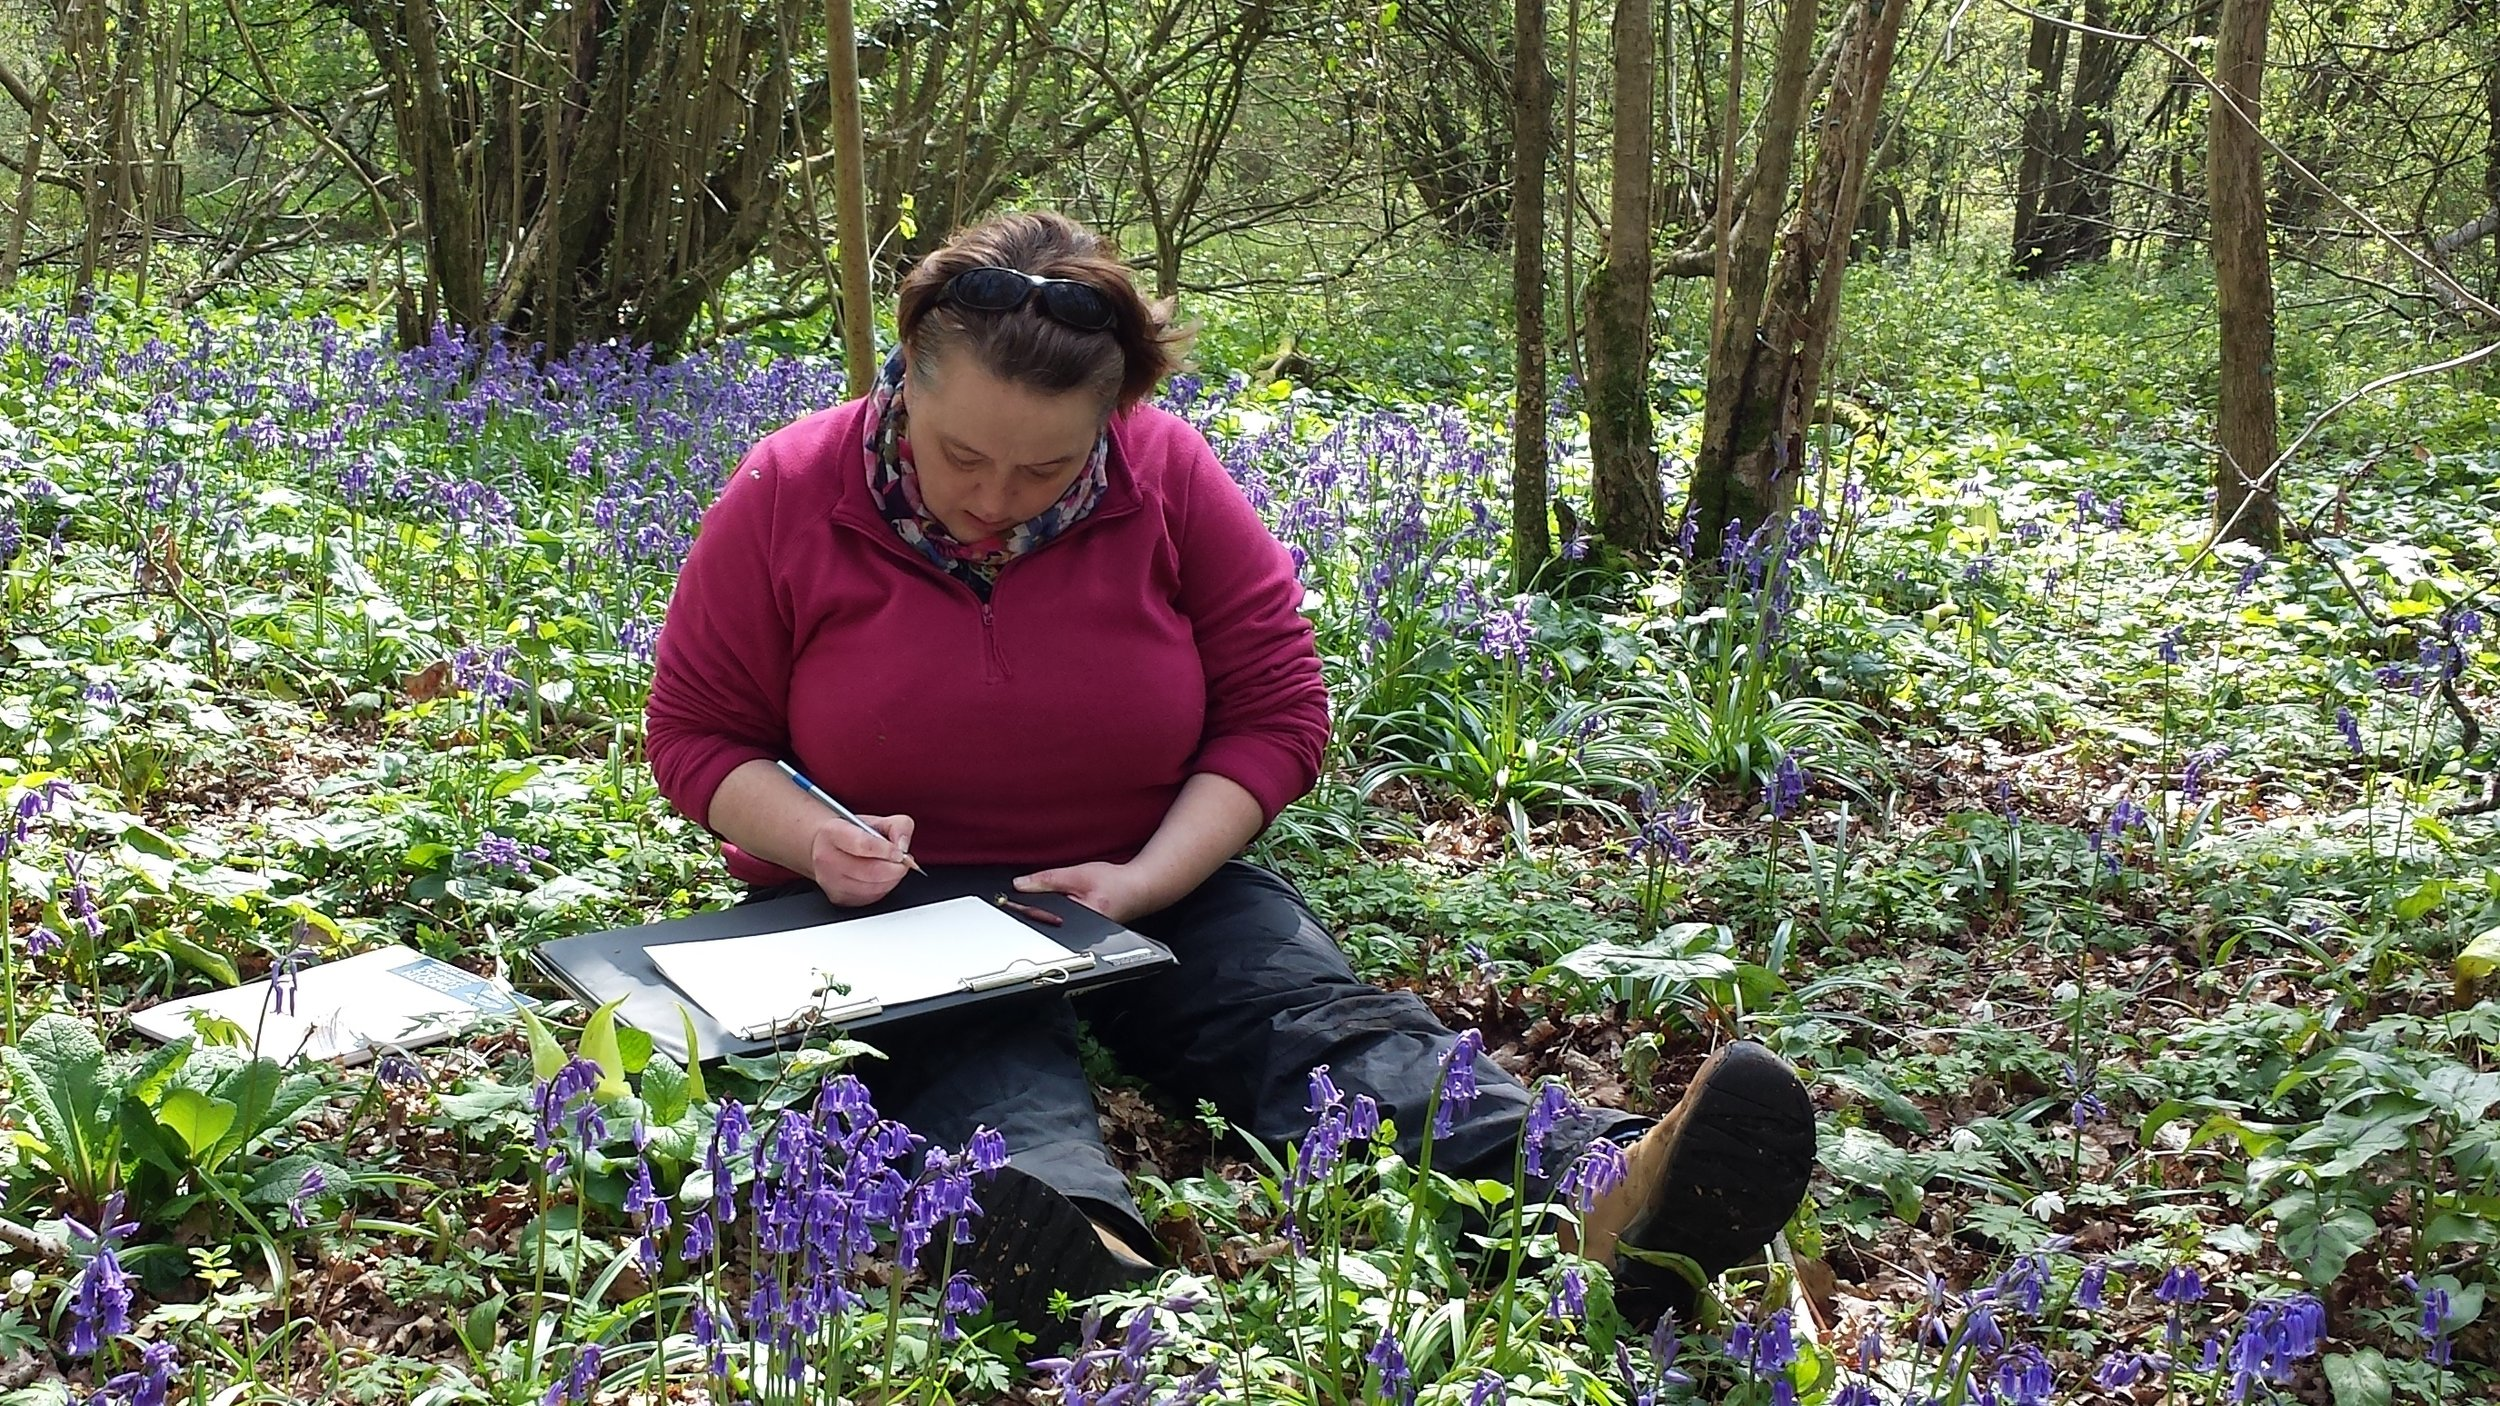 Artist Sarah Morrish, studying bluebells in a wood. Photo courtesy Sarah Morrish.